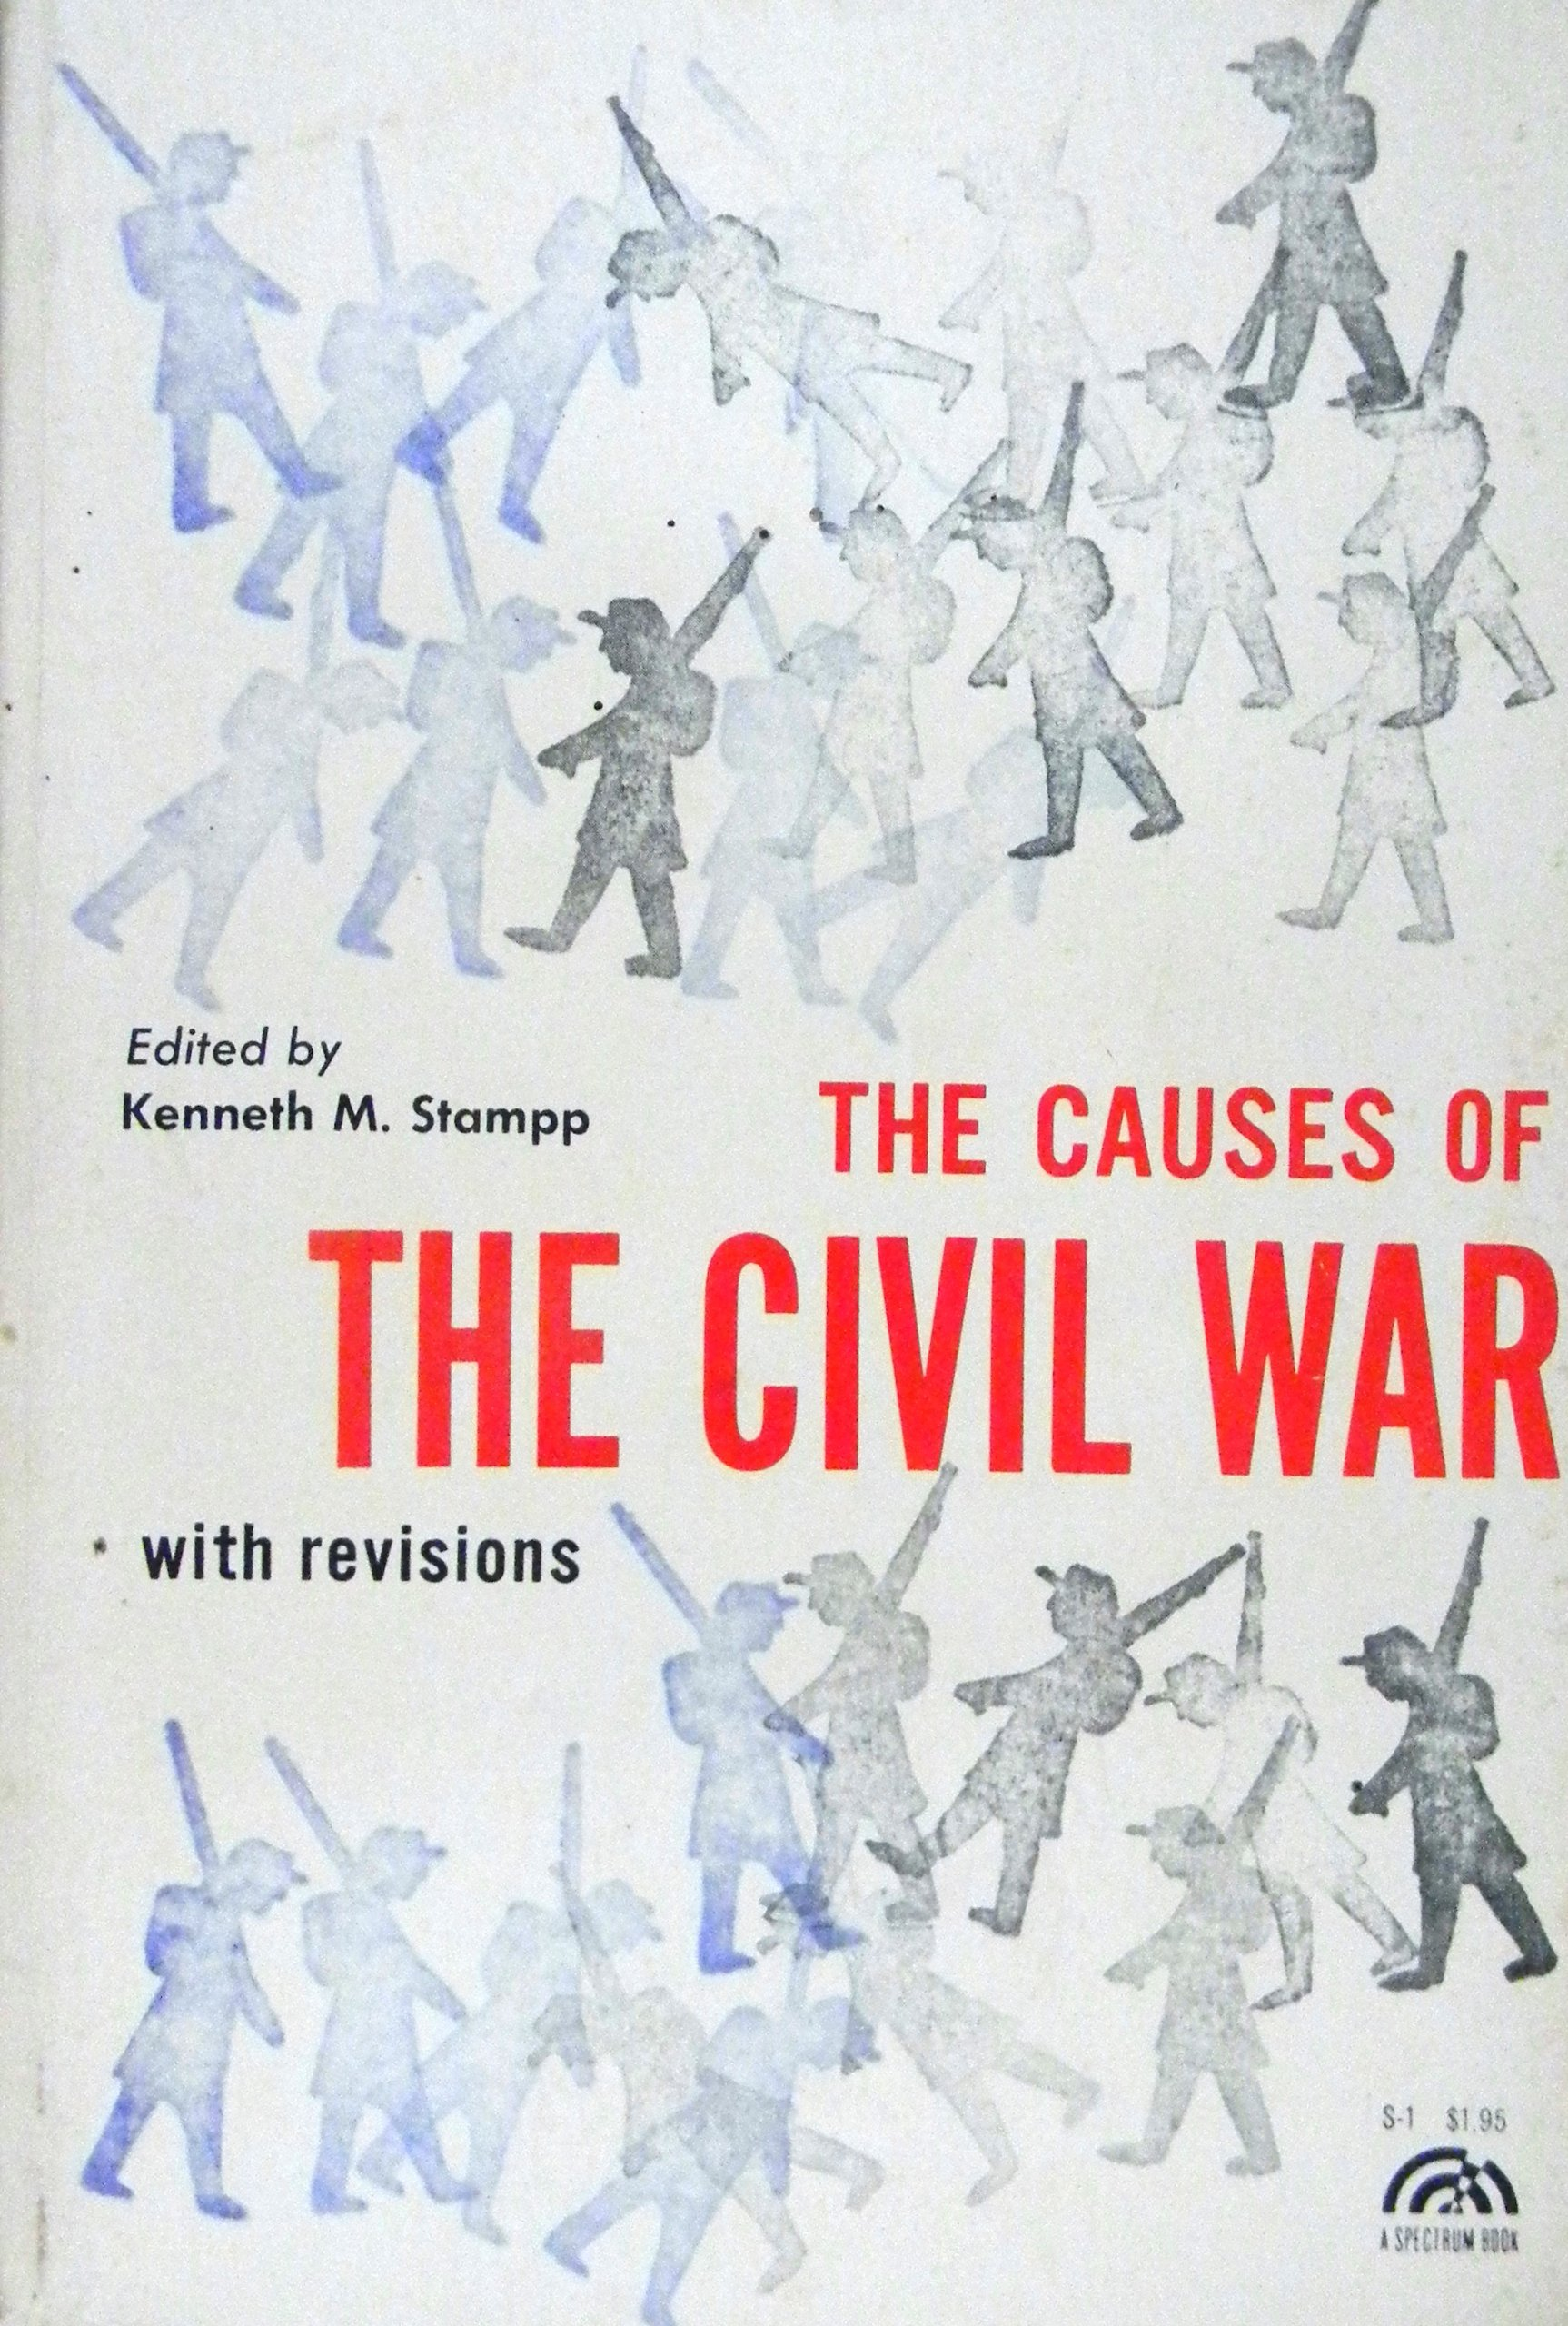 the causes of the civil war kenneth stampp